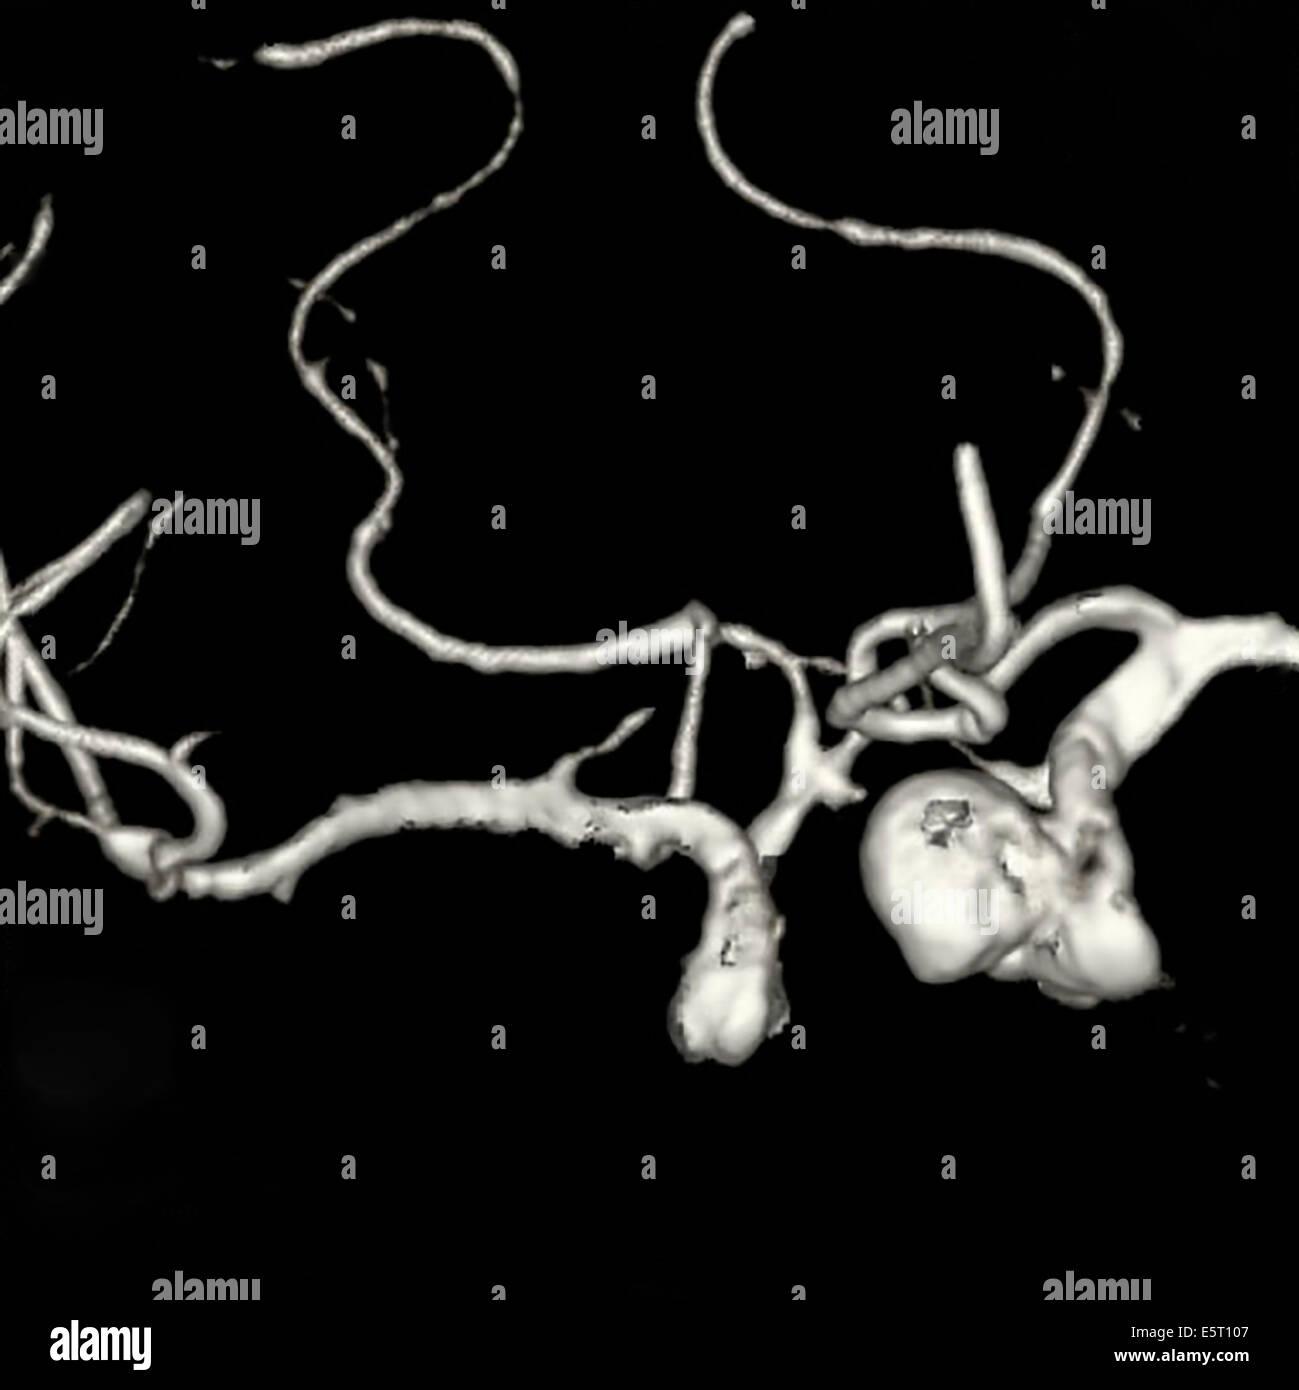 3D computed tomography (CT) scan of a pituitary adenoma by discovering multiple aneurysms. - Stock Image